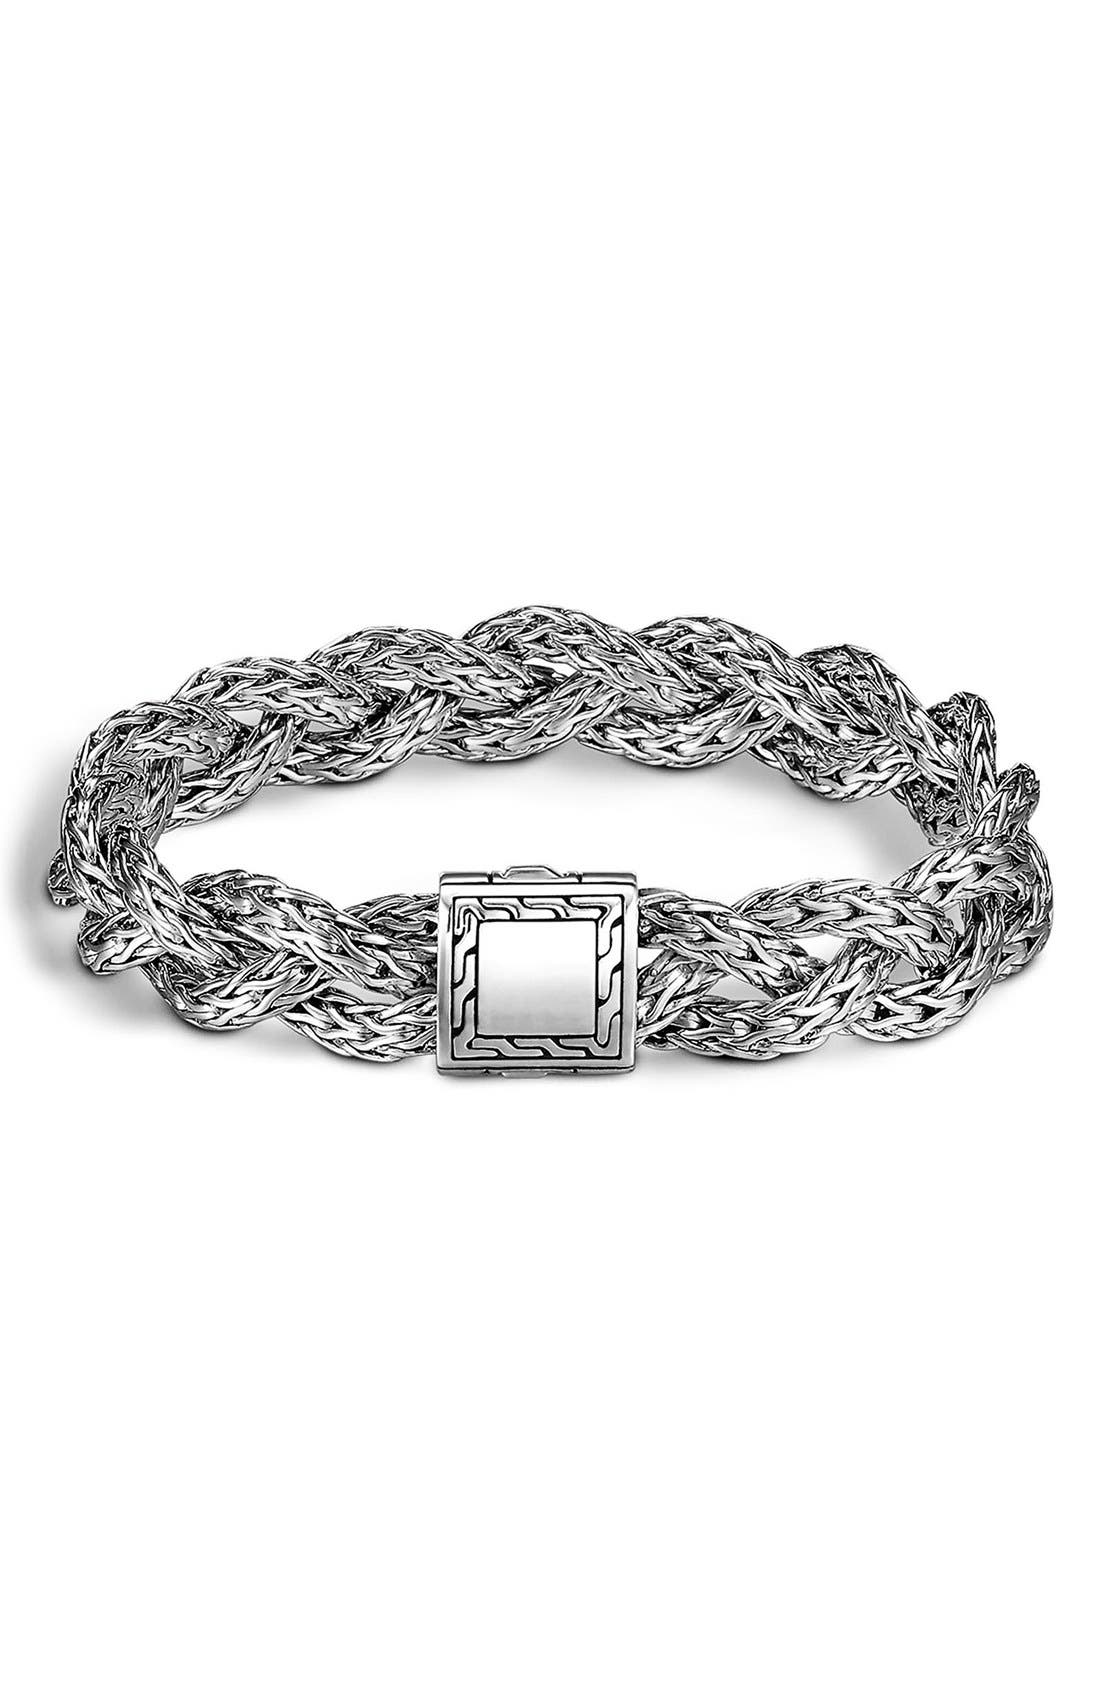 Main Image - John Hardy 'Classic Chain' Small Braided Bracelet